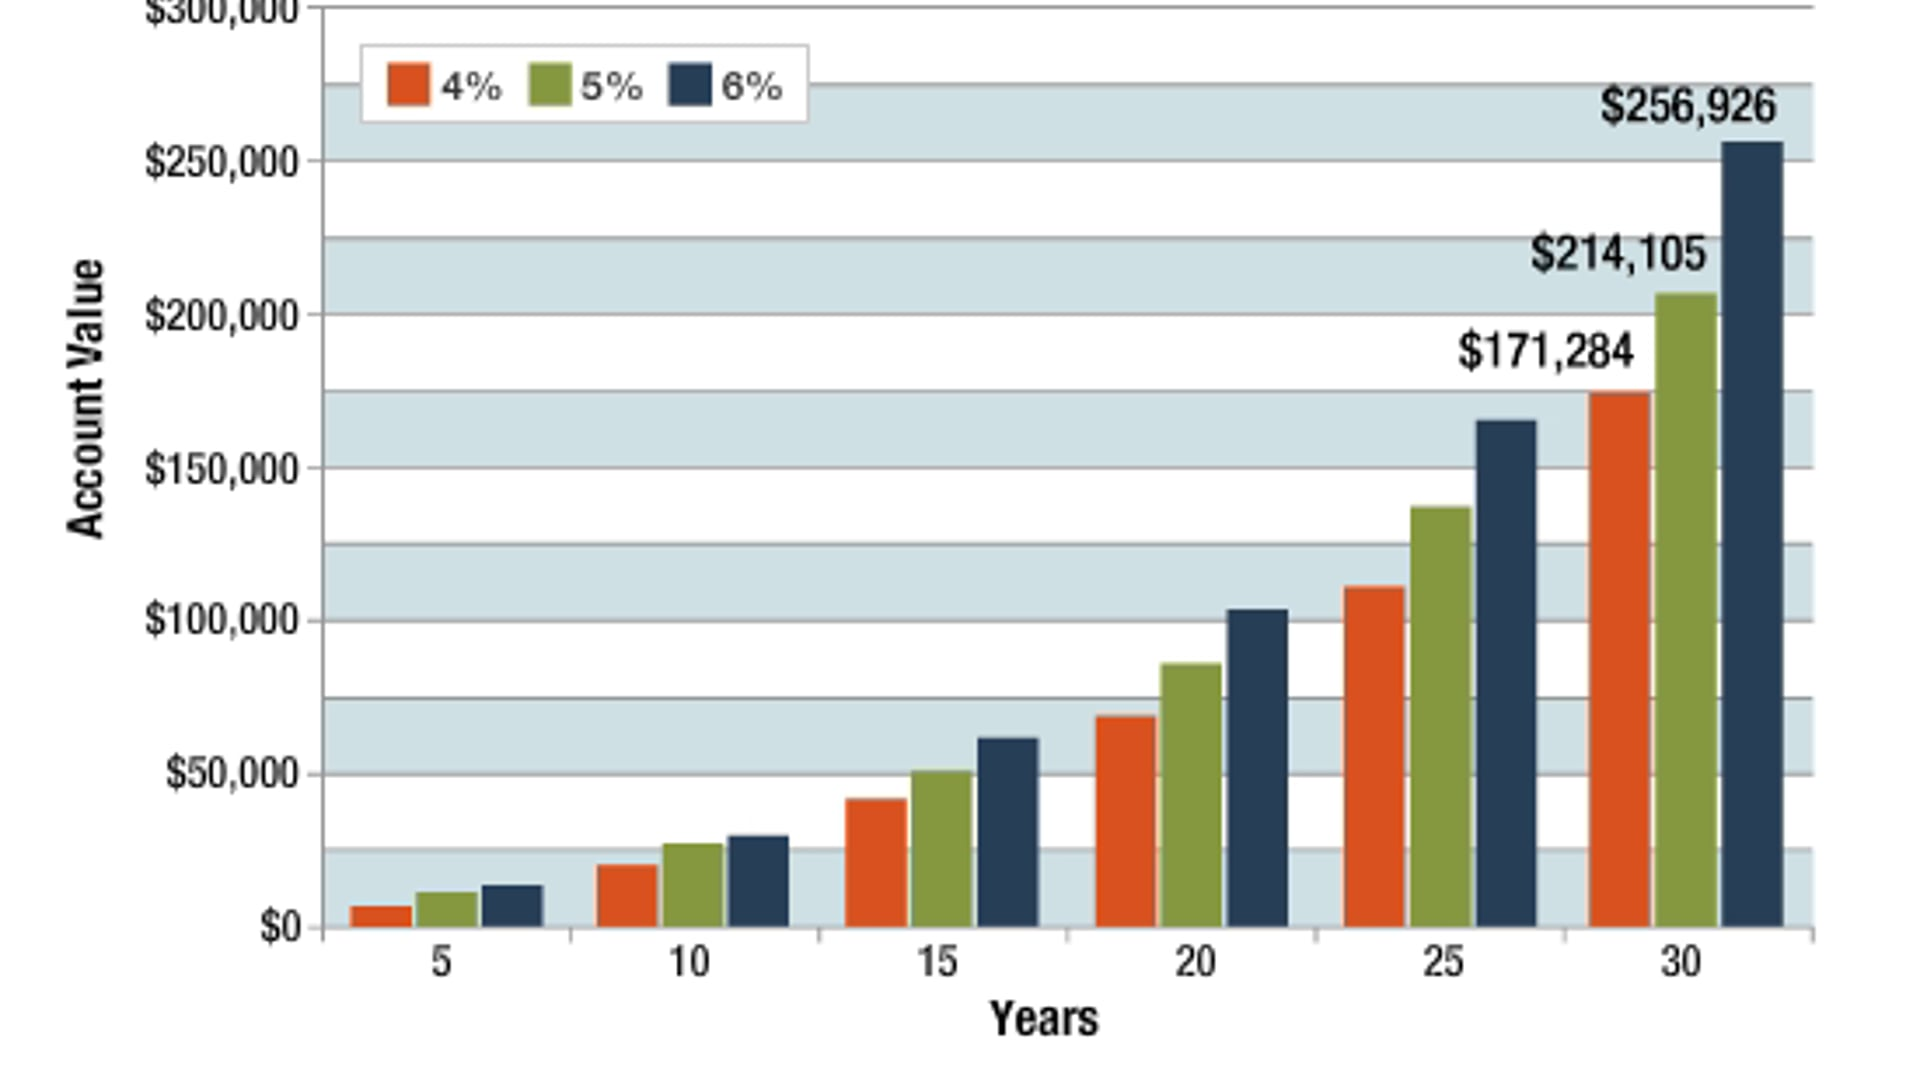 Retirement Savings: The Big Difference a Little Bit Extra Could Make